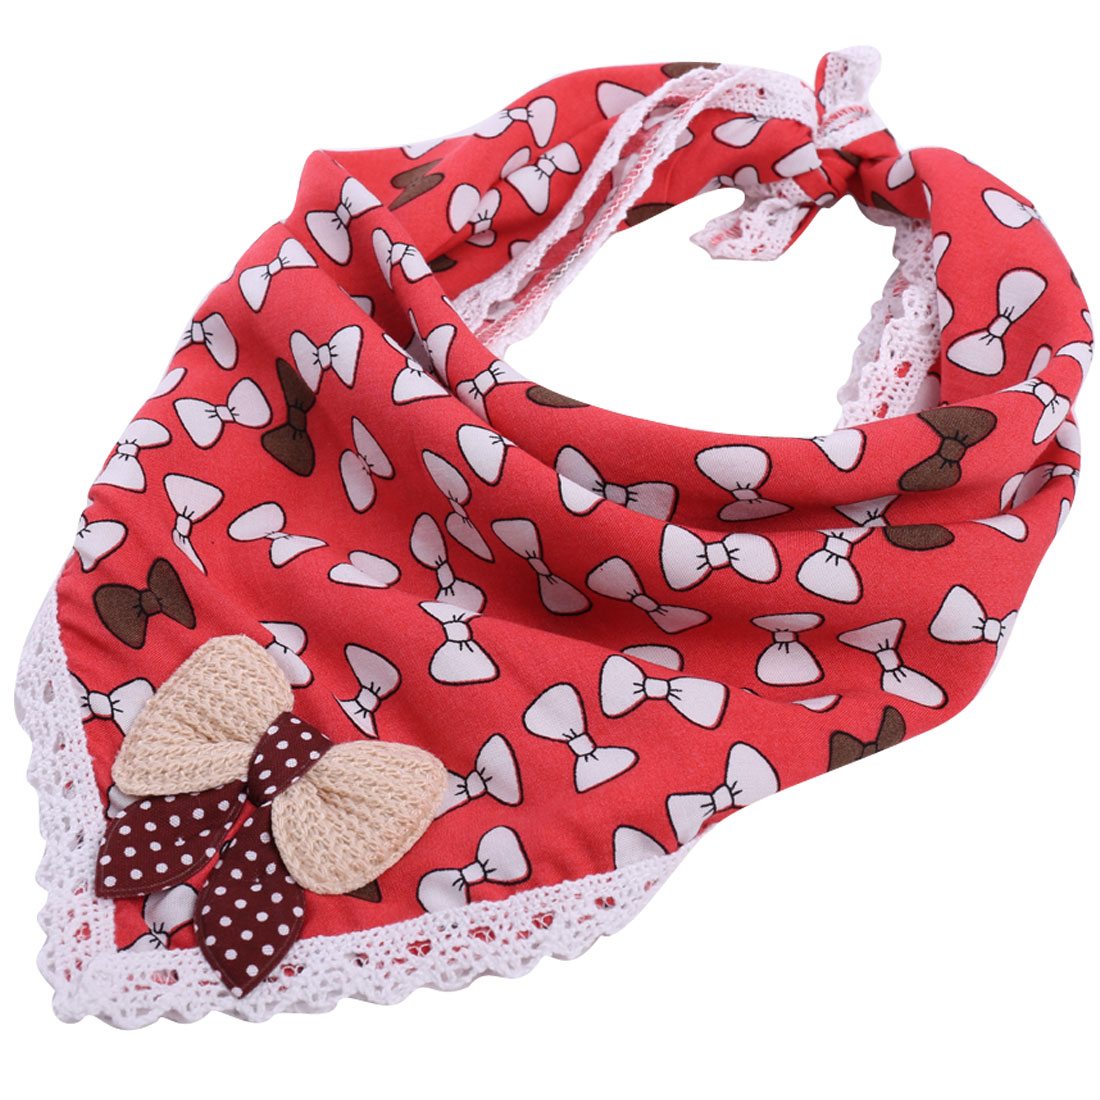 Lovely Bowtie Pattern Watermelon Red Square Napkins